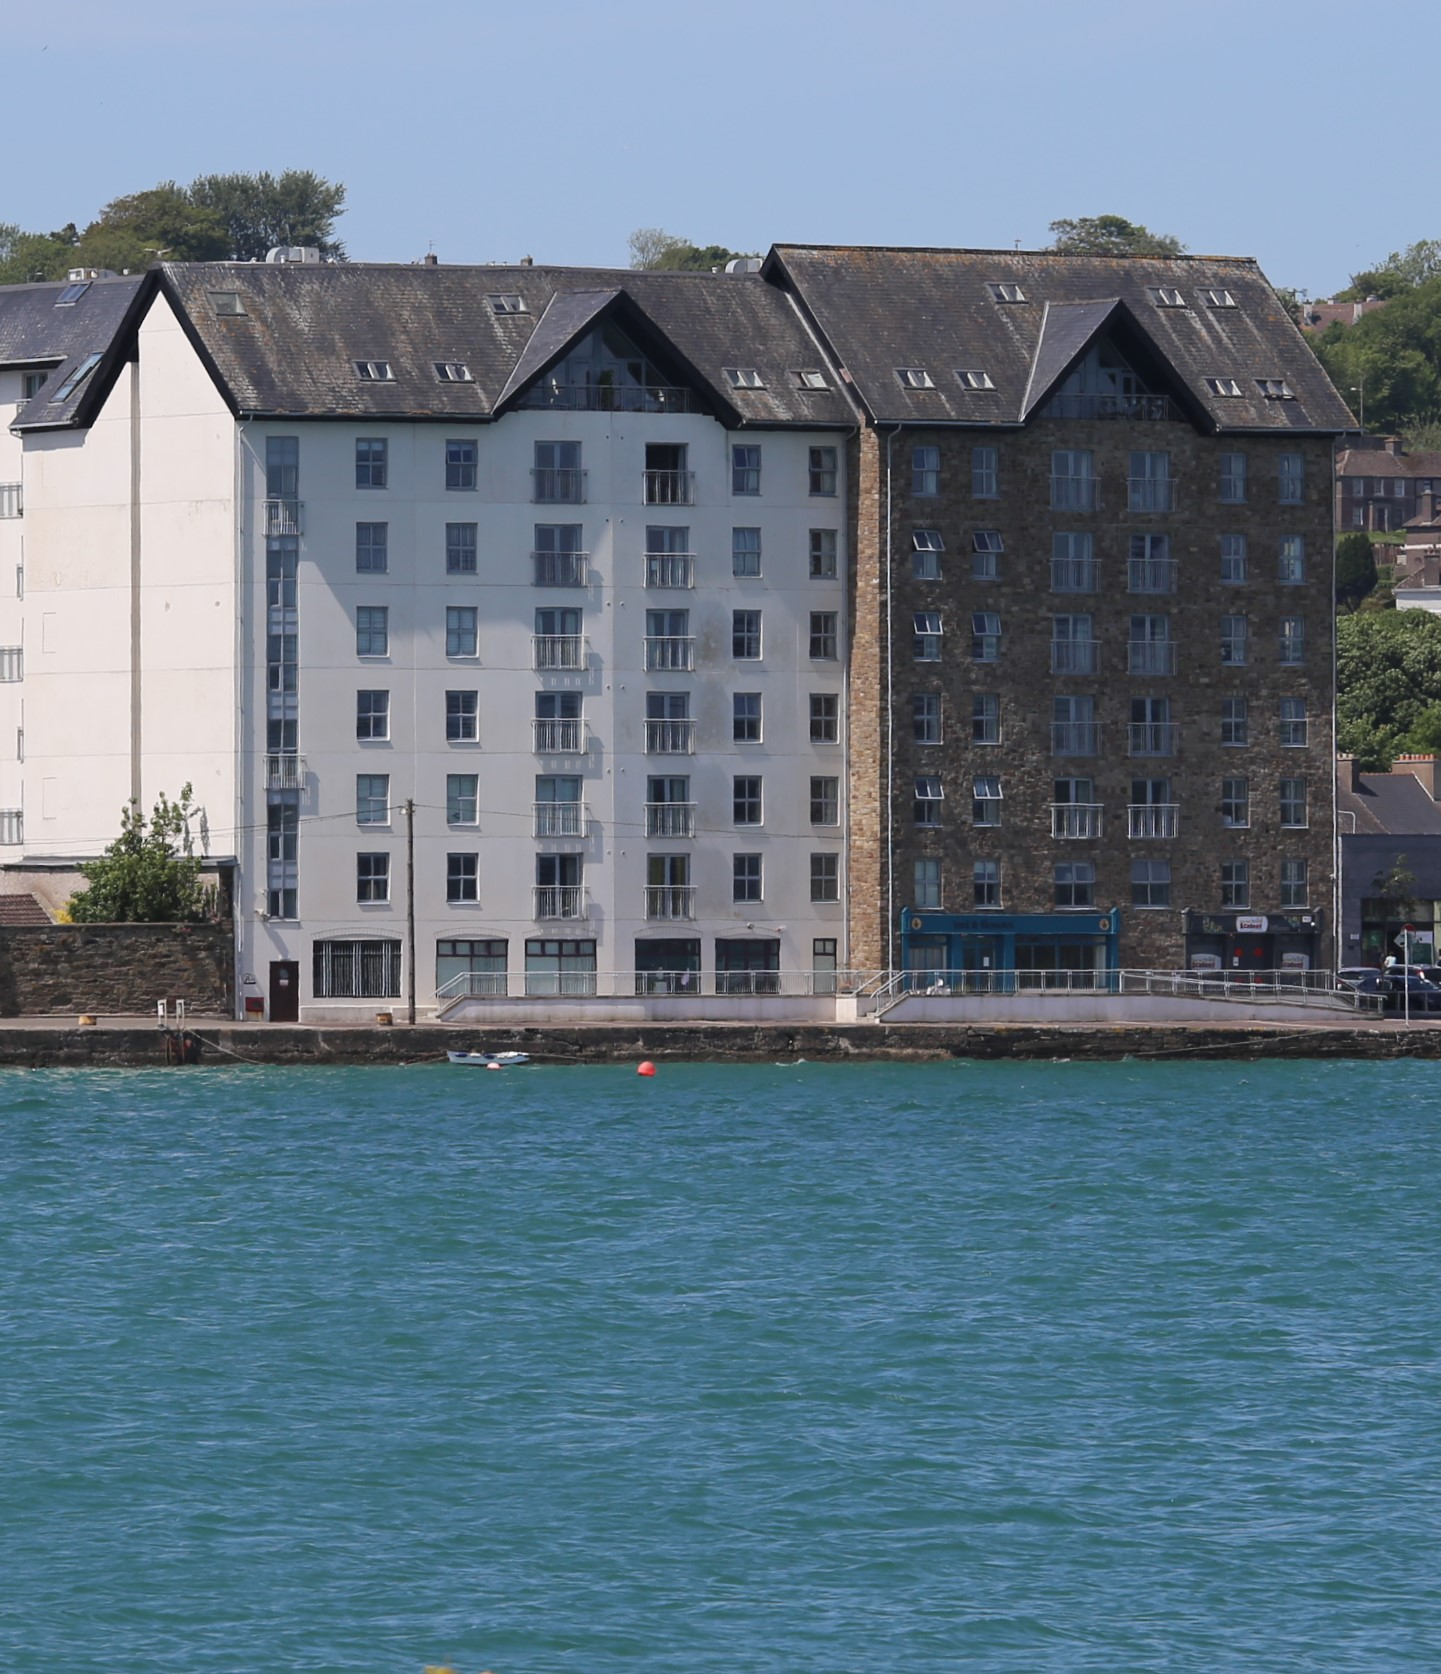 311 Pier Head, Youghal